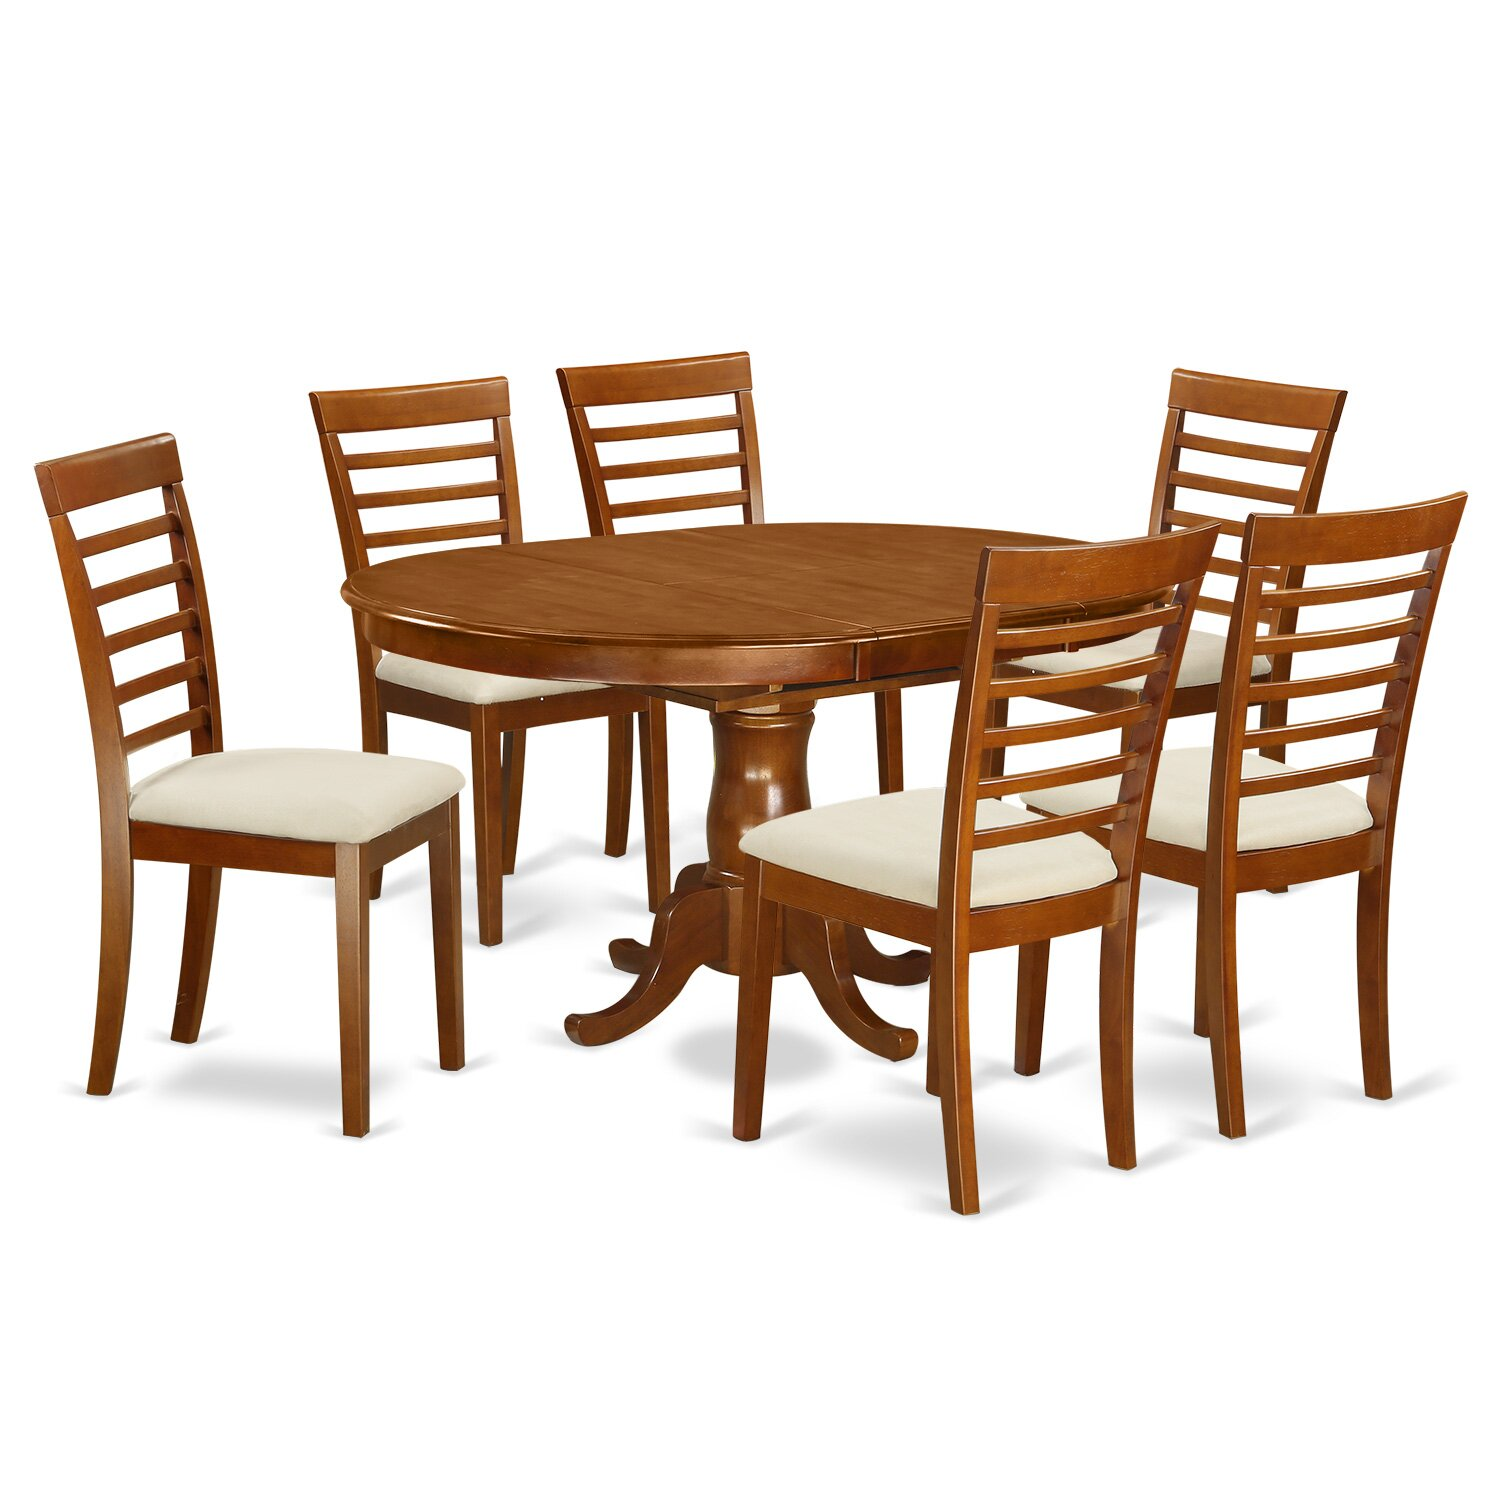 East west portland 7 piece dining set reviews wayfair for Furniture 7 reviews